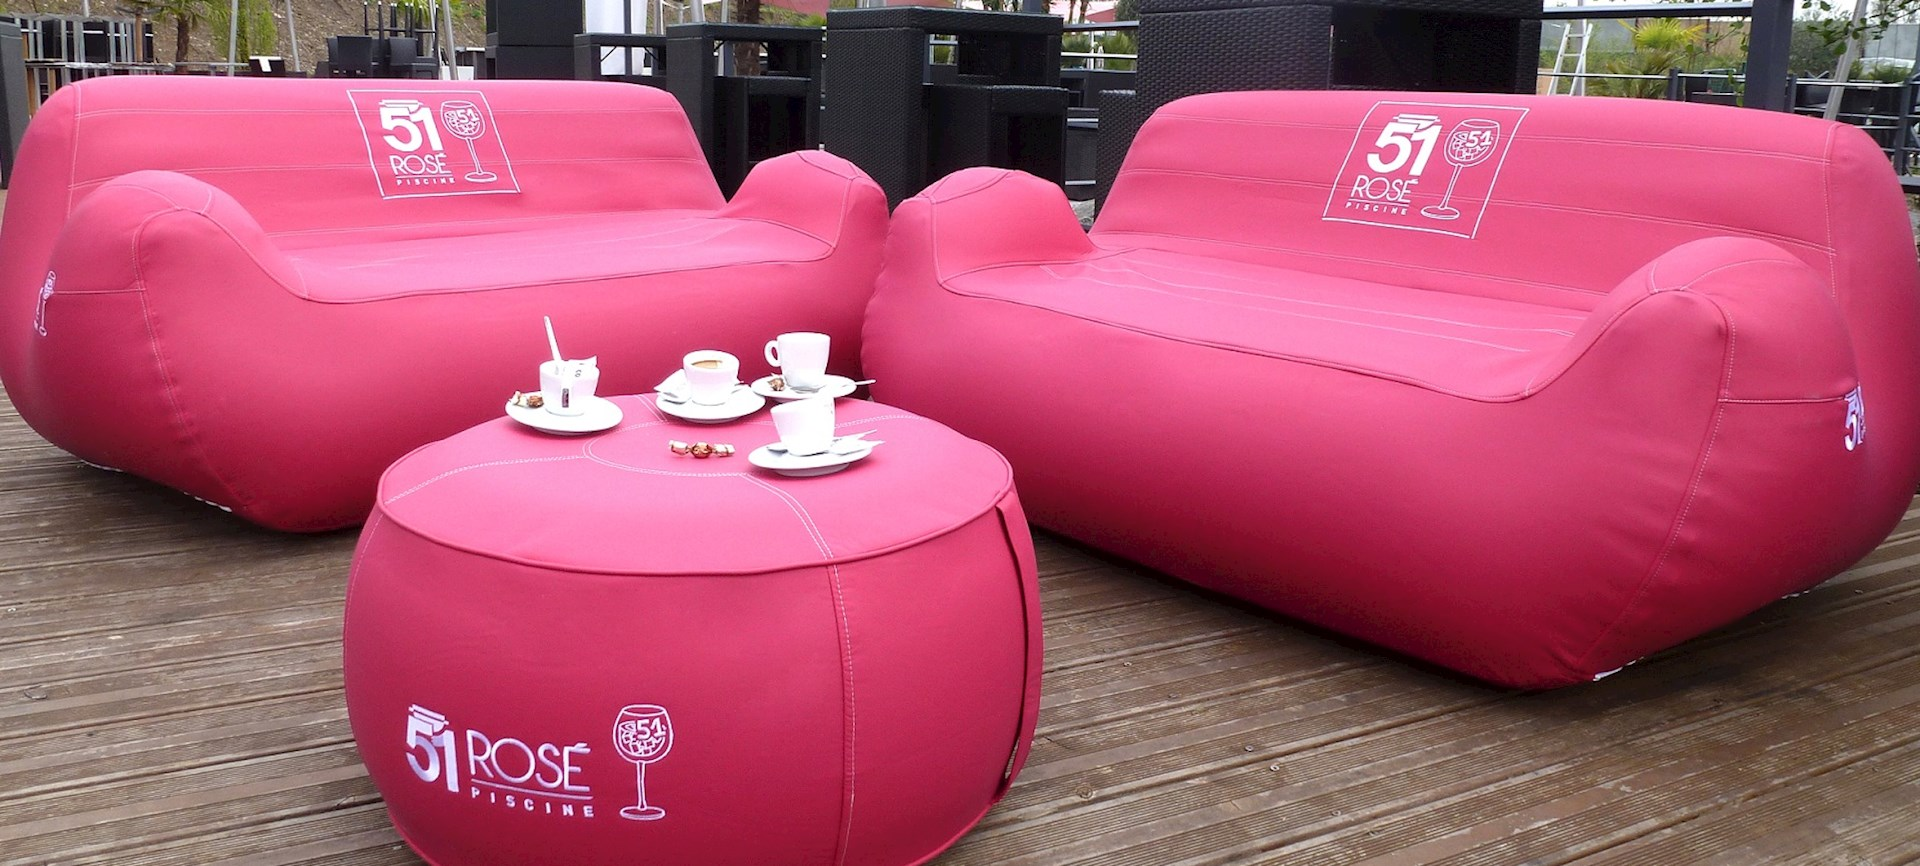 marvellous inflatable furniture pictures ideas ... GEYYEDO